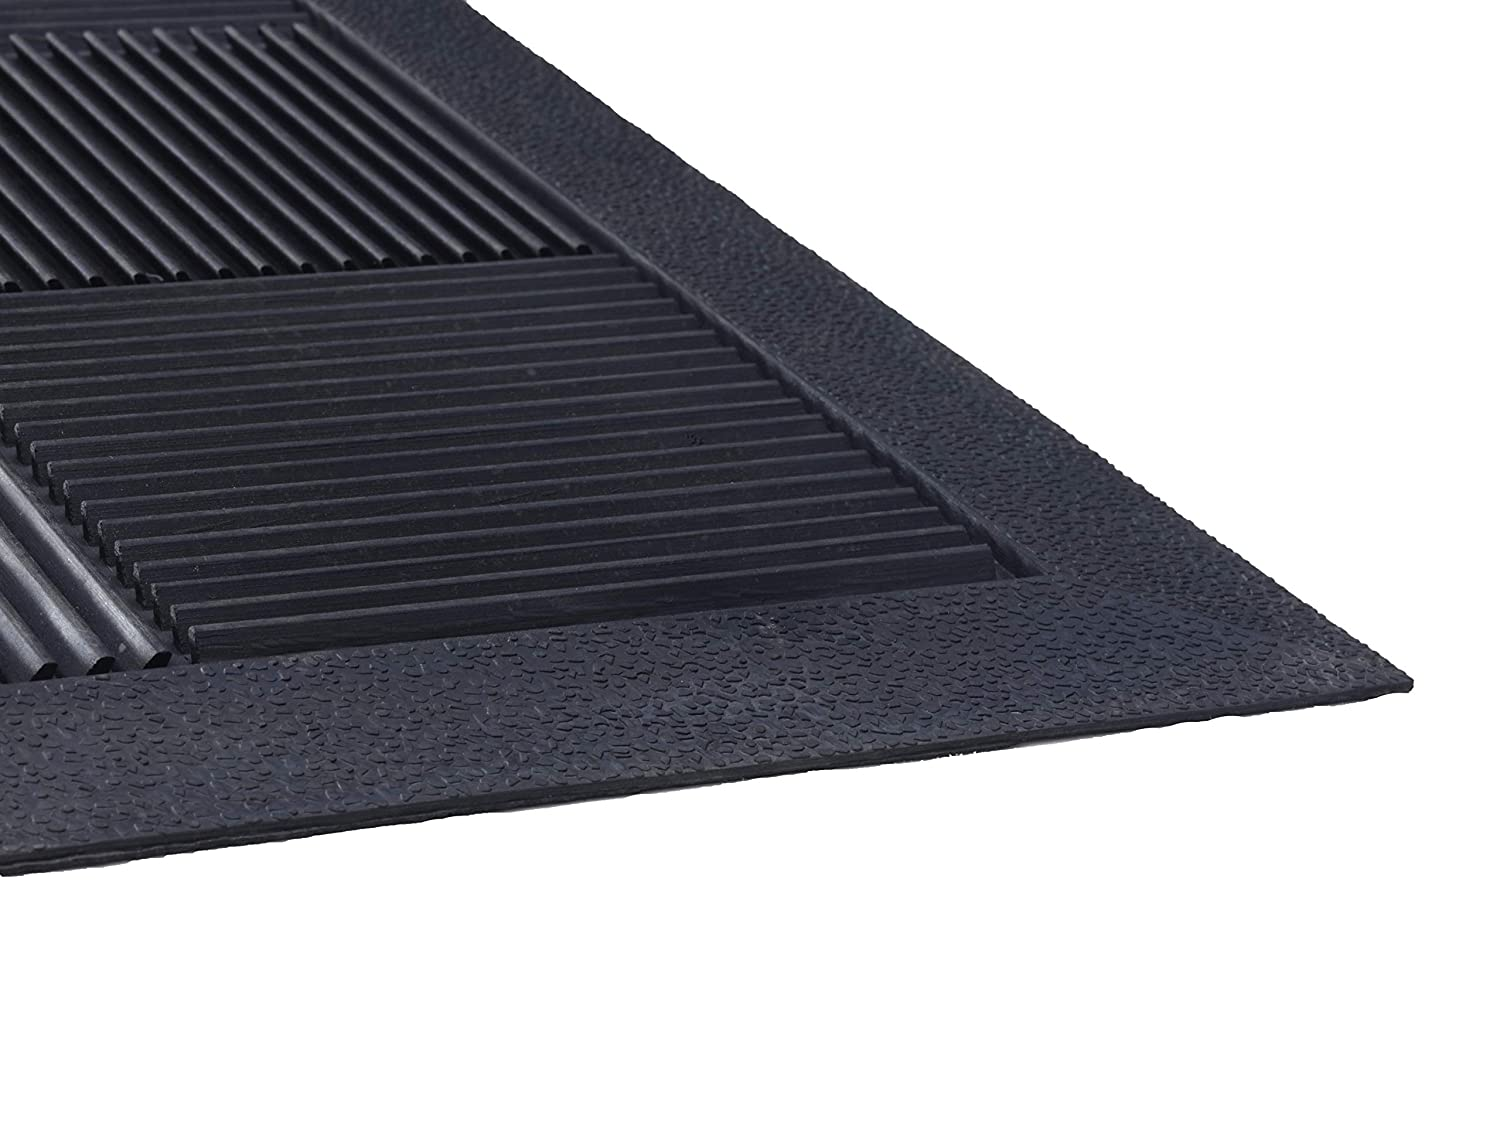 Parquet Wiper Scraper Outdoor Floor Mat,Rubber Removes Dirt and Handles Multi-direction Traffic NA PARQUET2X3 Black 2x3 ft